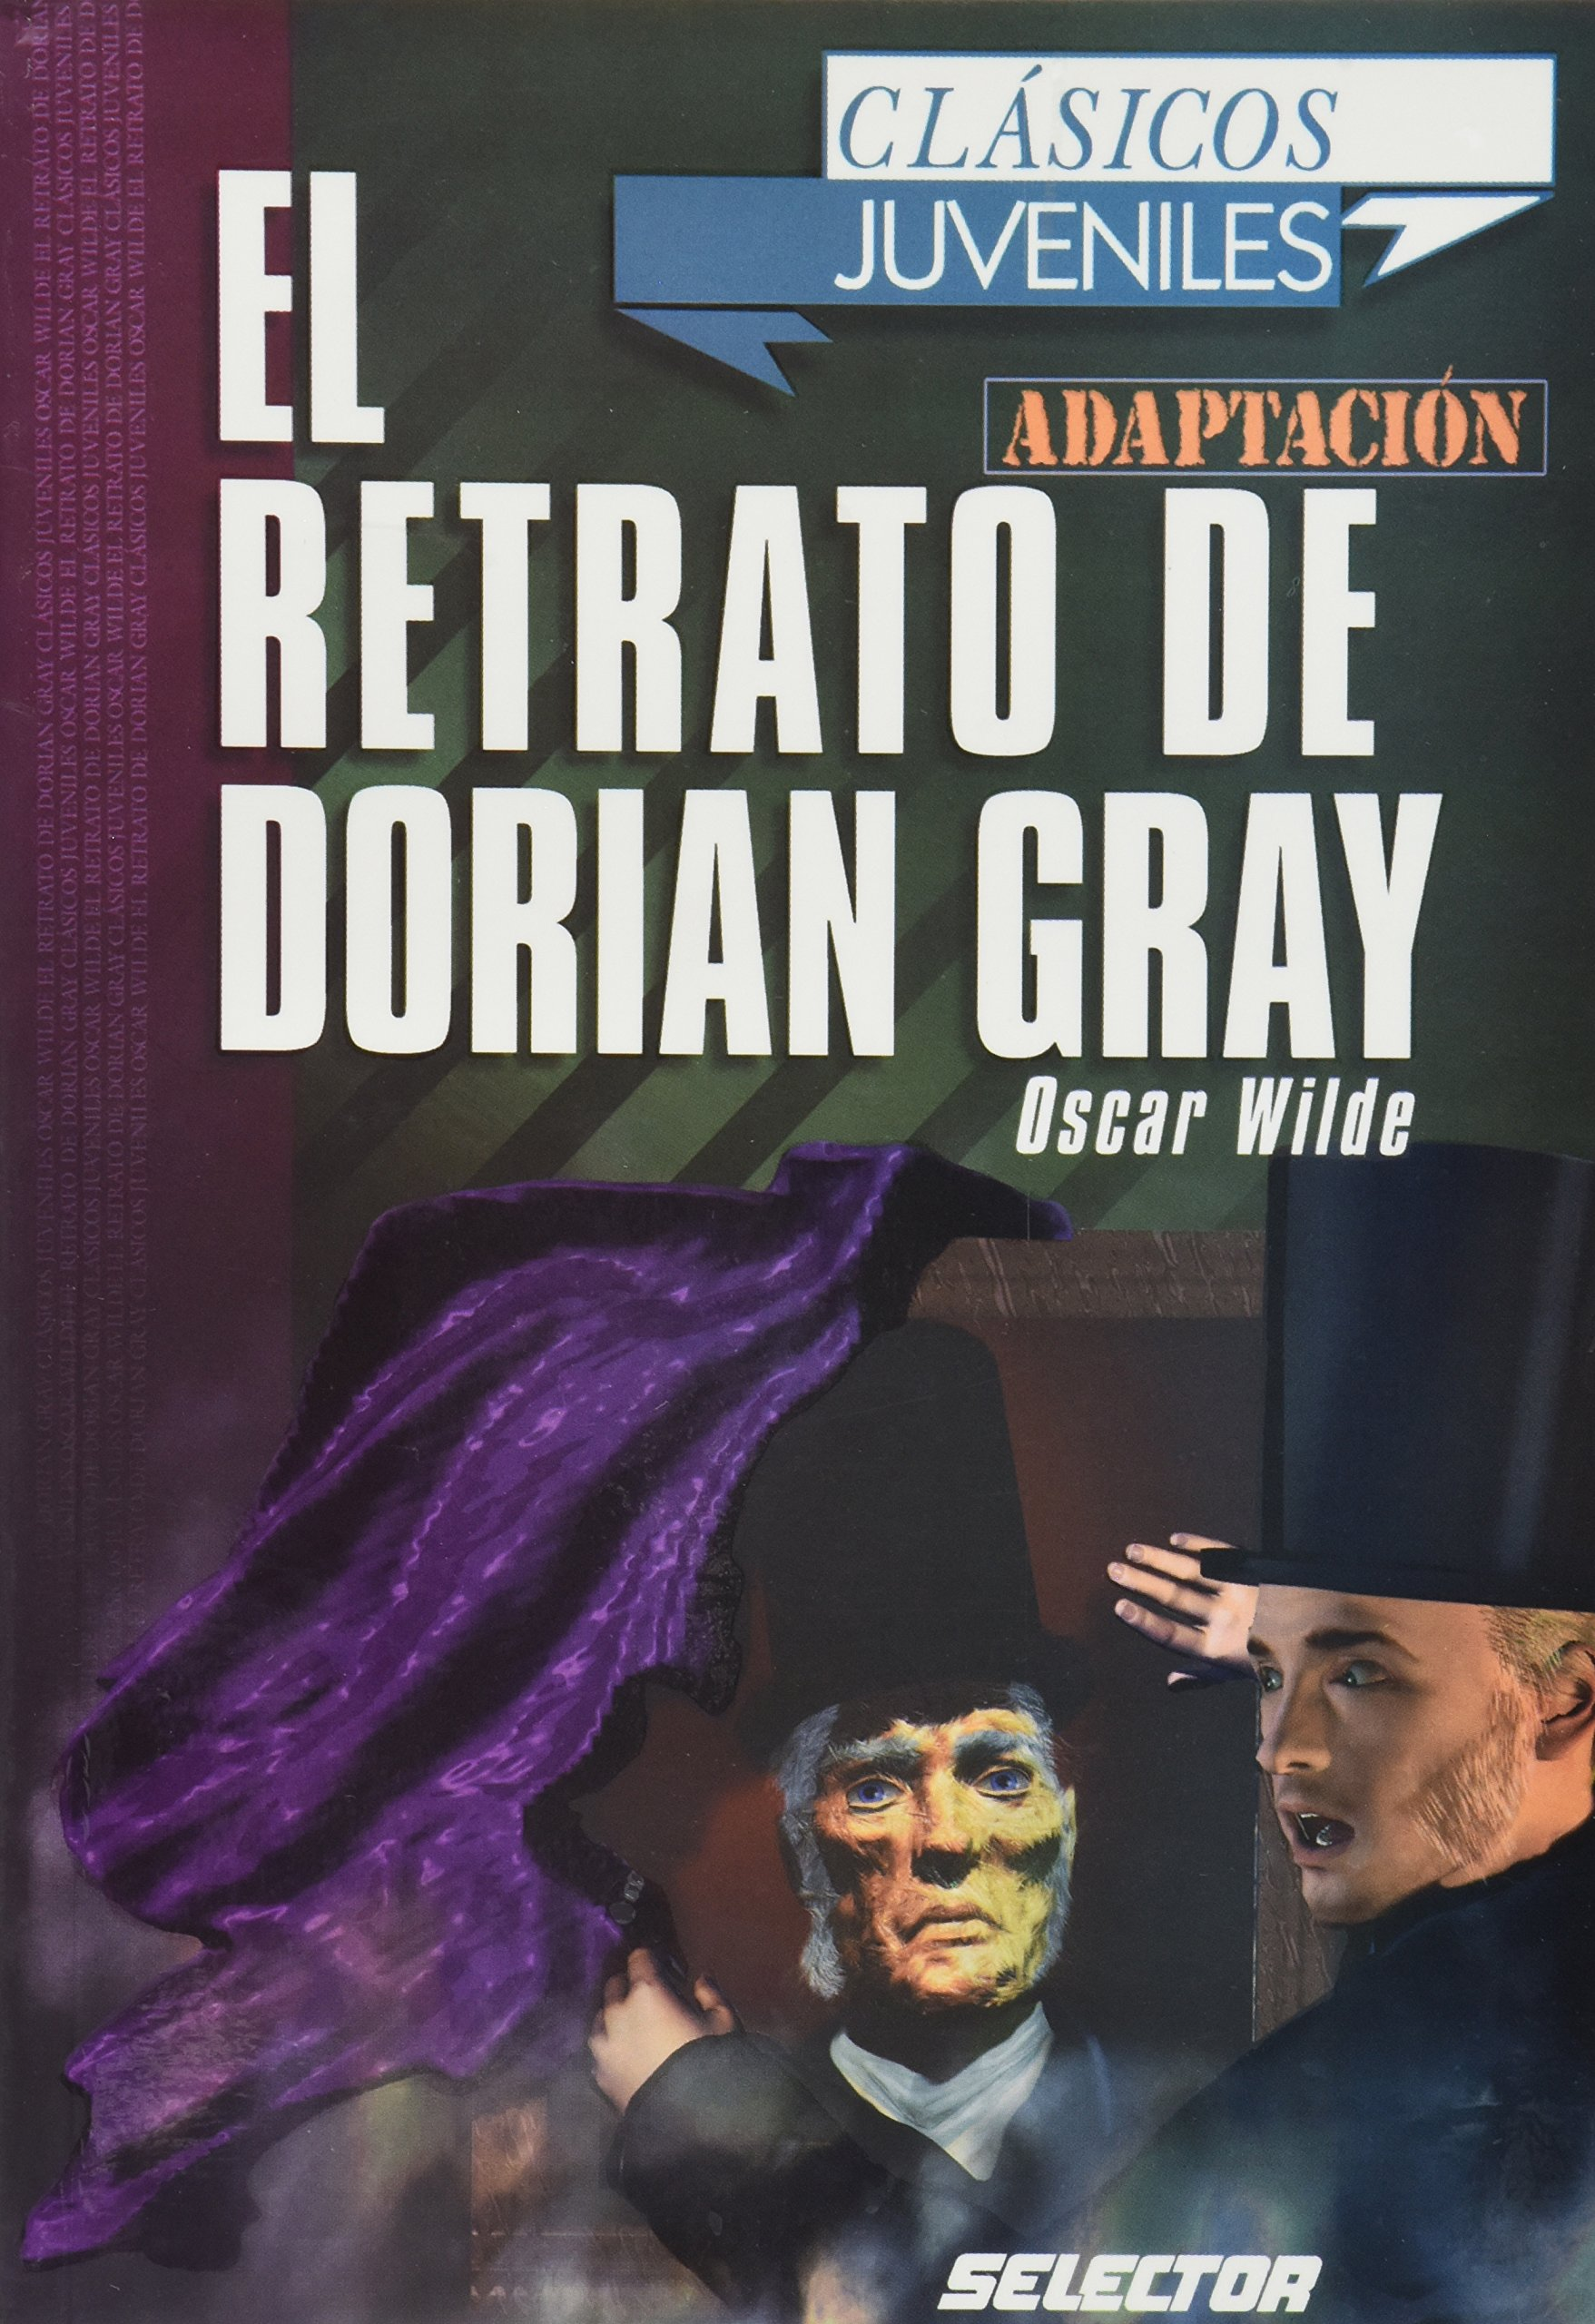 El Retrato de Dorian Gray (Spanish Edition): Oscar Wilde: 9789708030243: Amazon.com: Books